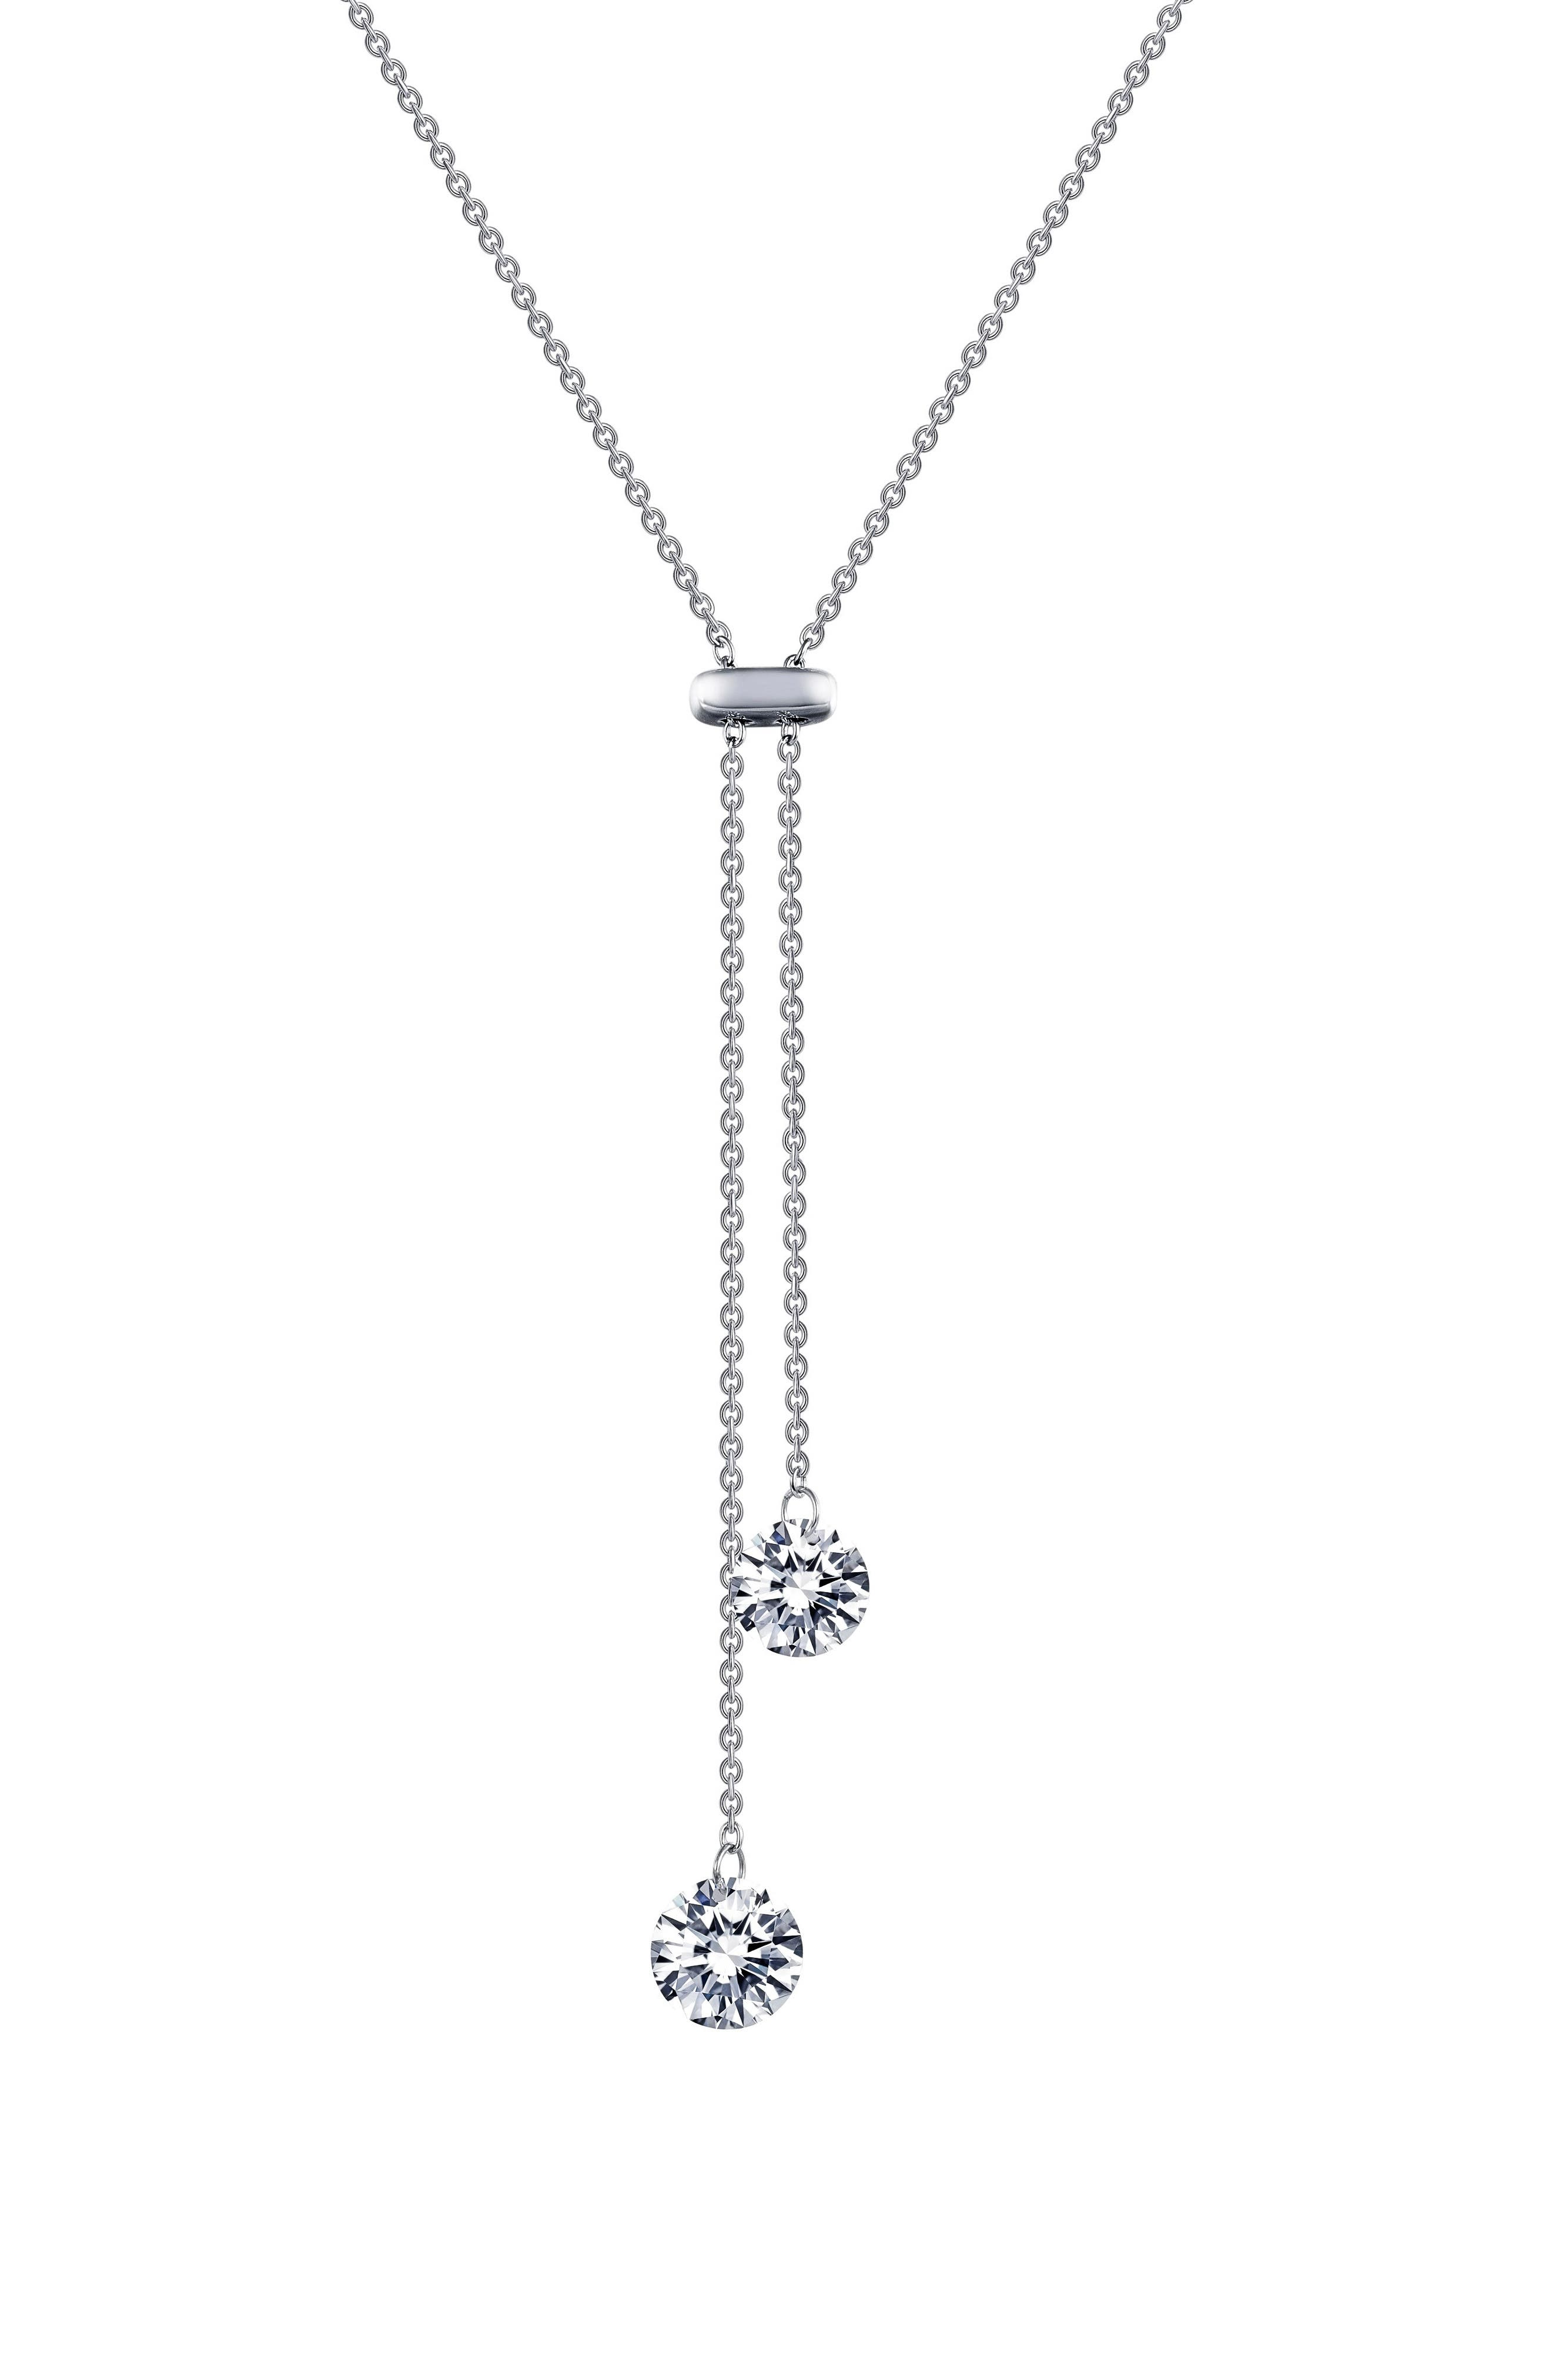 Simulated Diamond Pendant Necklace,                             Main thumbnail 1, color,                             040